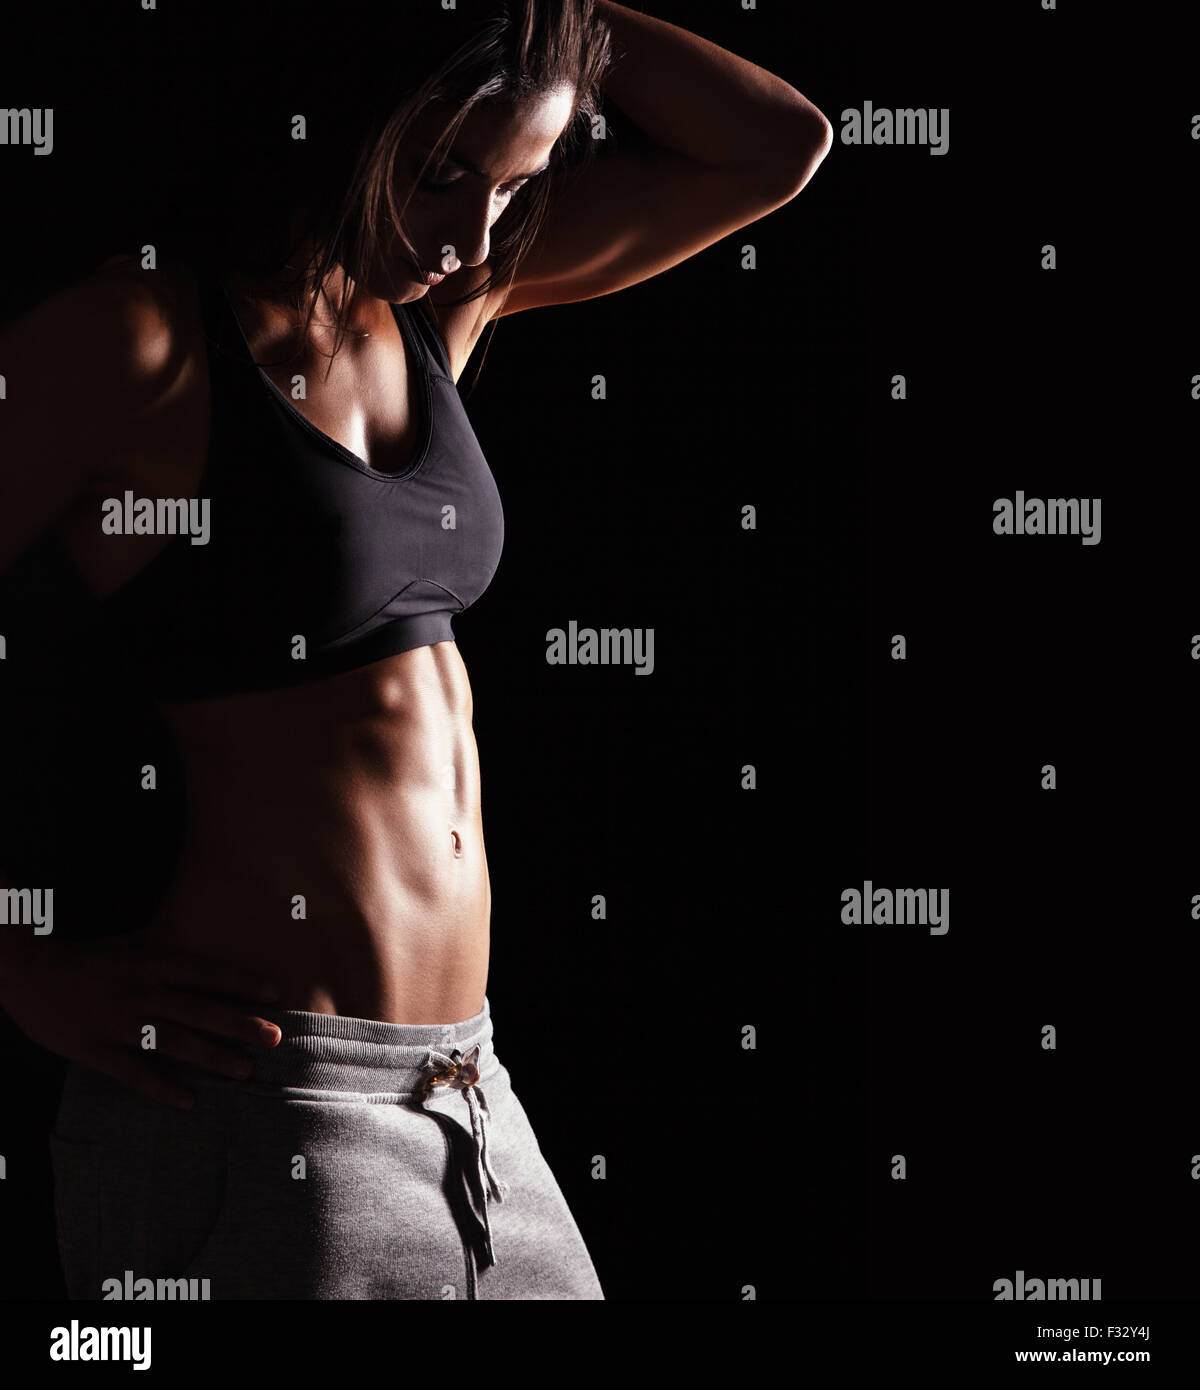 Image of fitness woman in sports clothing looking down. Young female model with muscular body. Horizontal studio - Stock Image